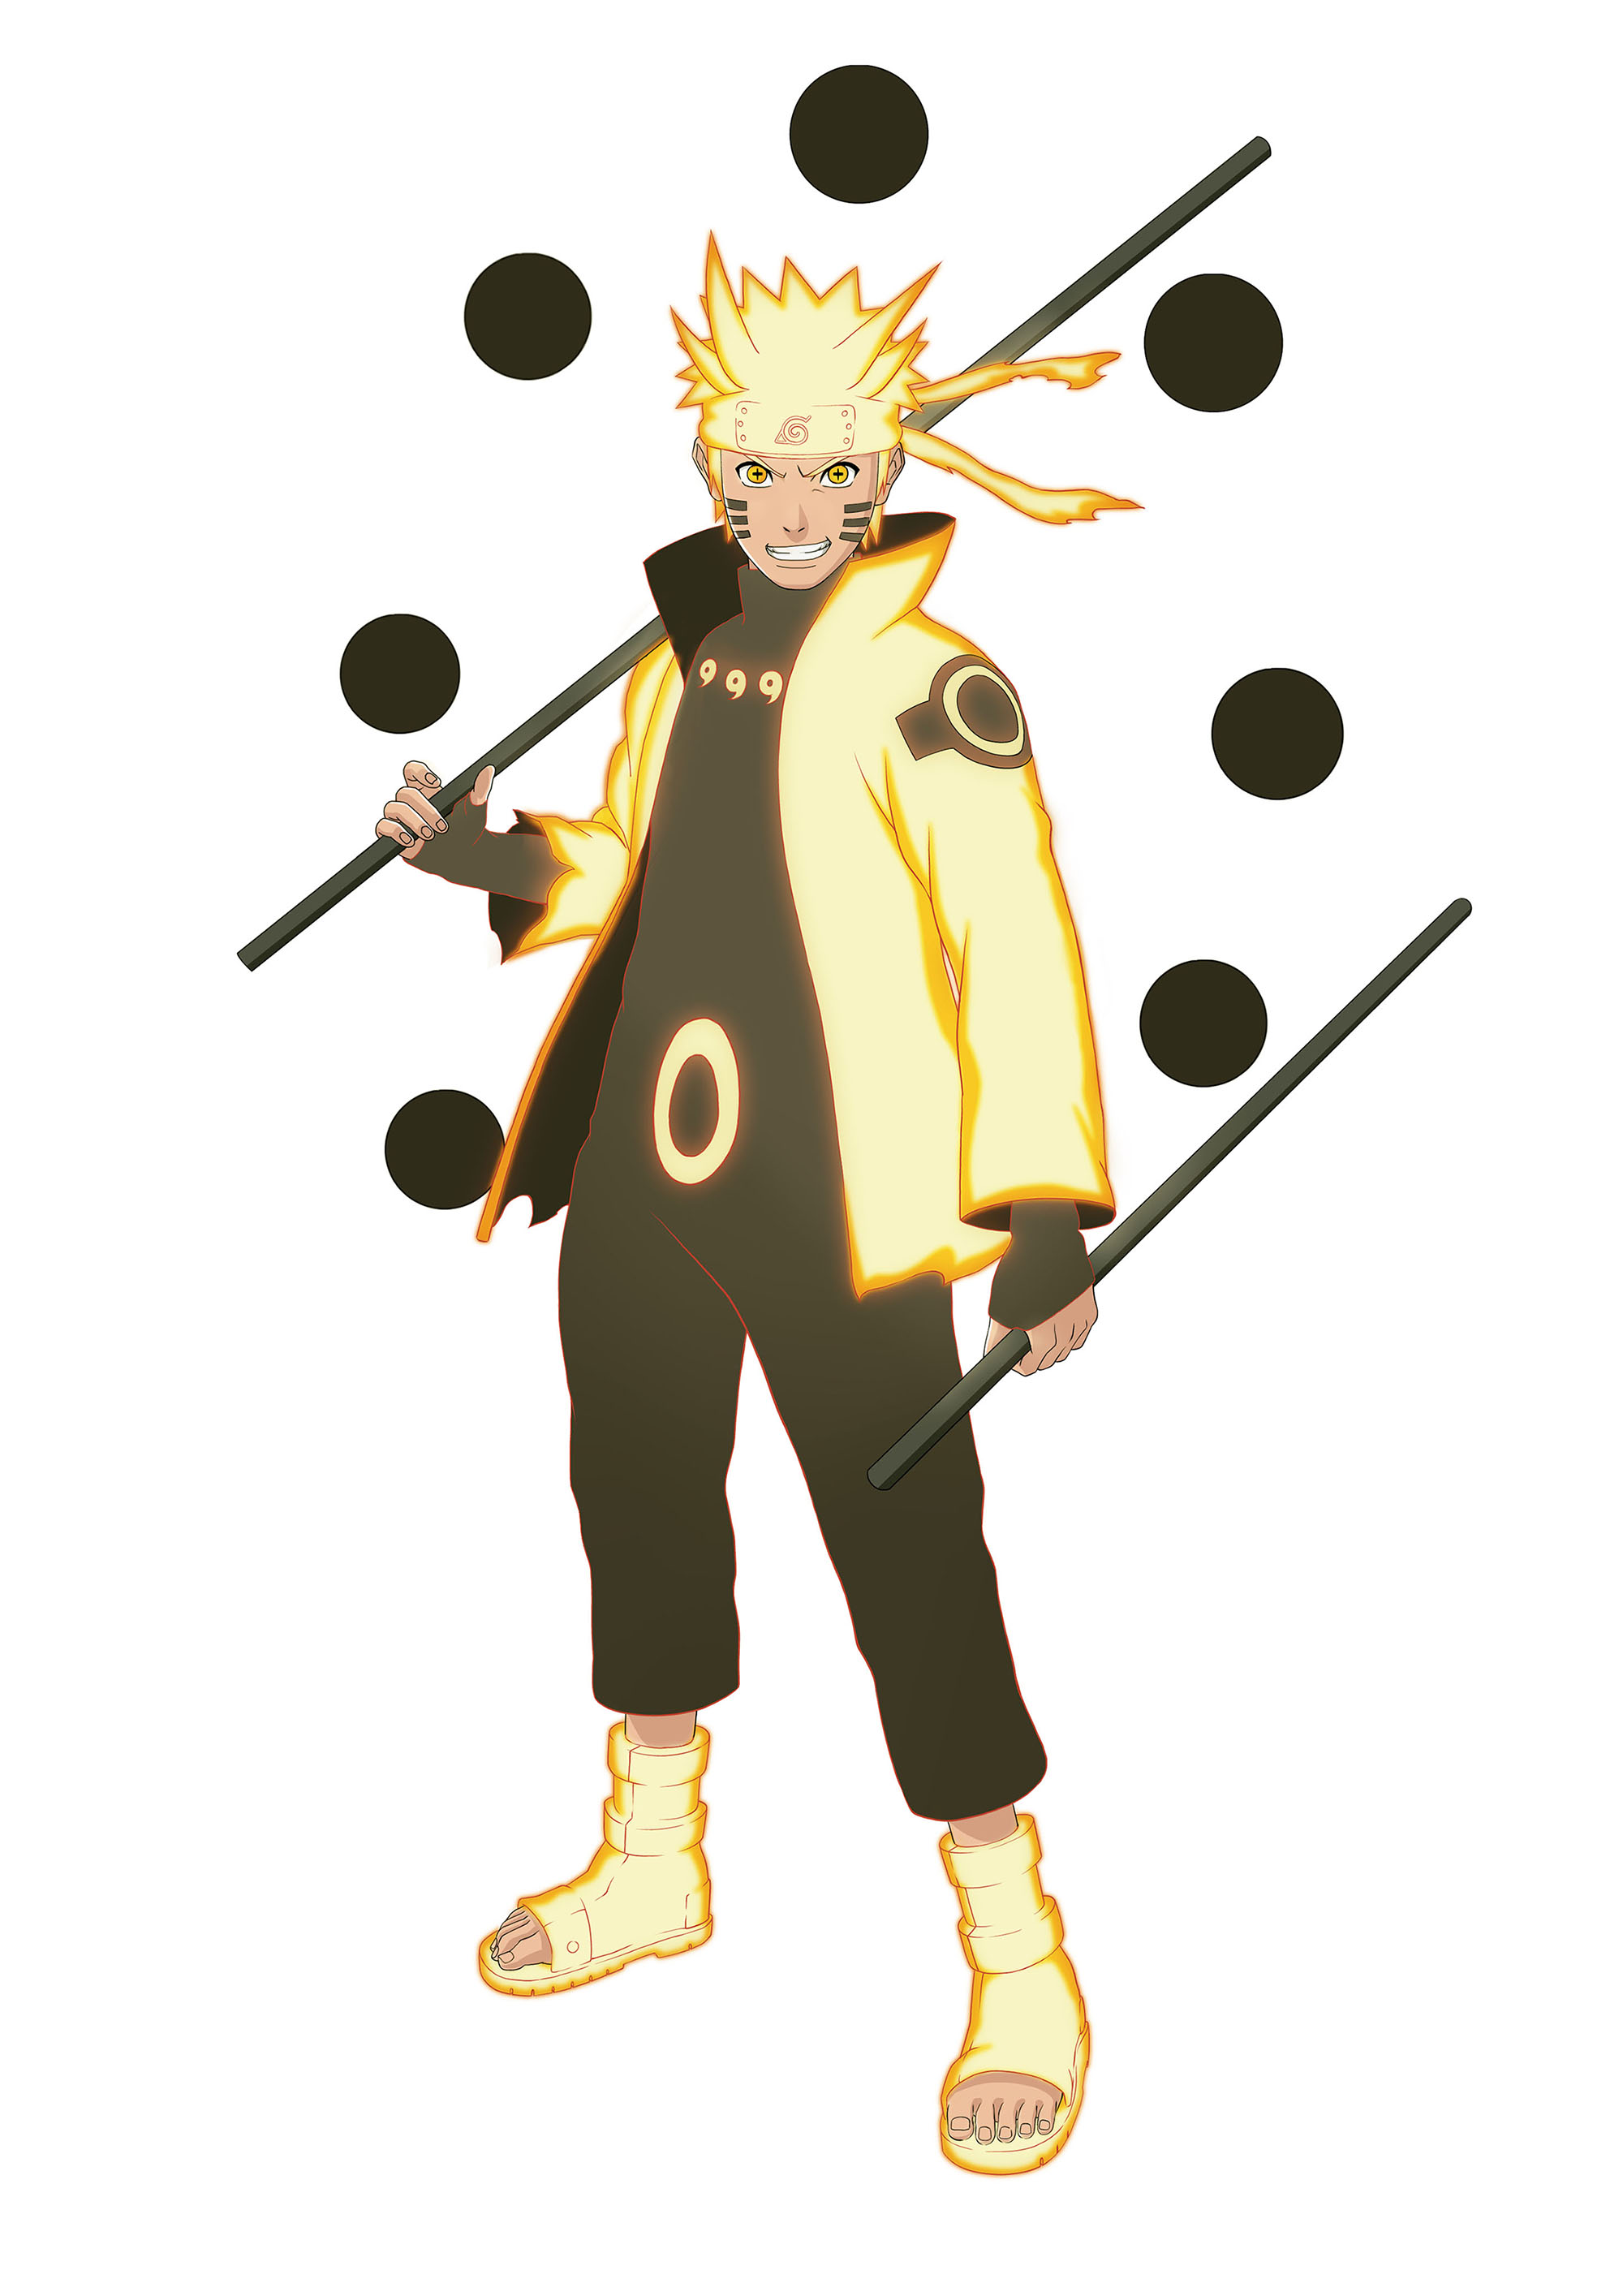 Naruto Shippuden: Ultimate Ninja Storm 4 Naruto Six Paths Sage Mode artwork